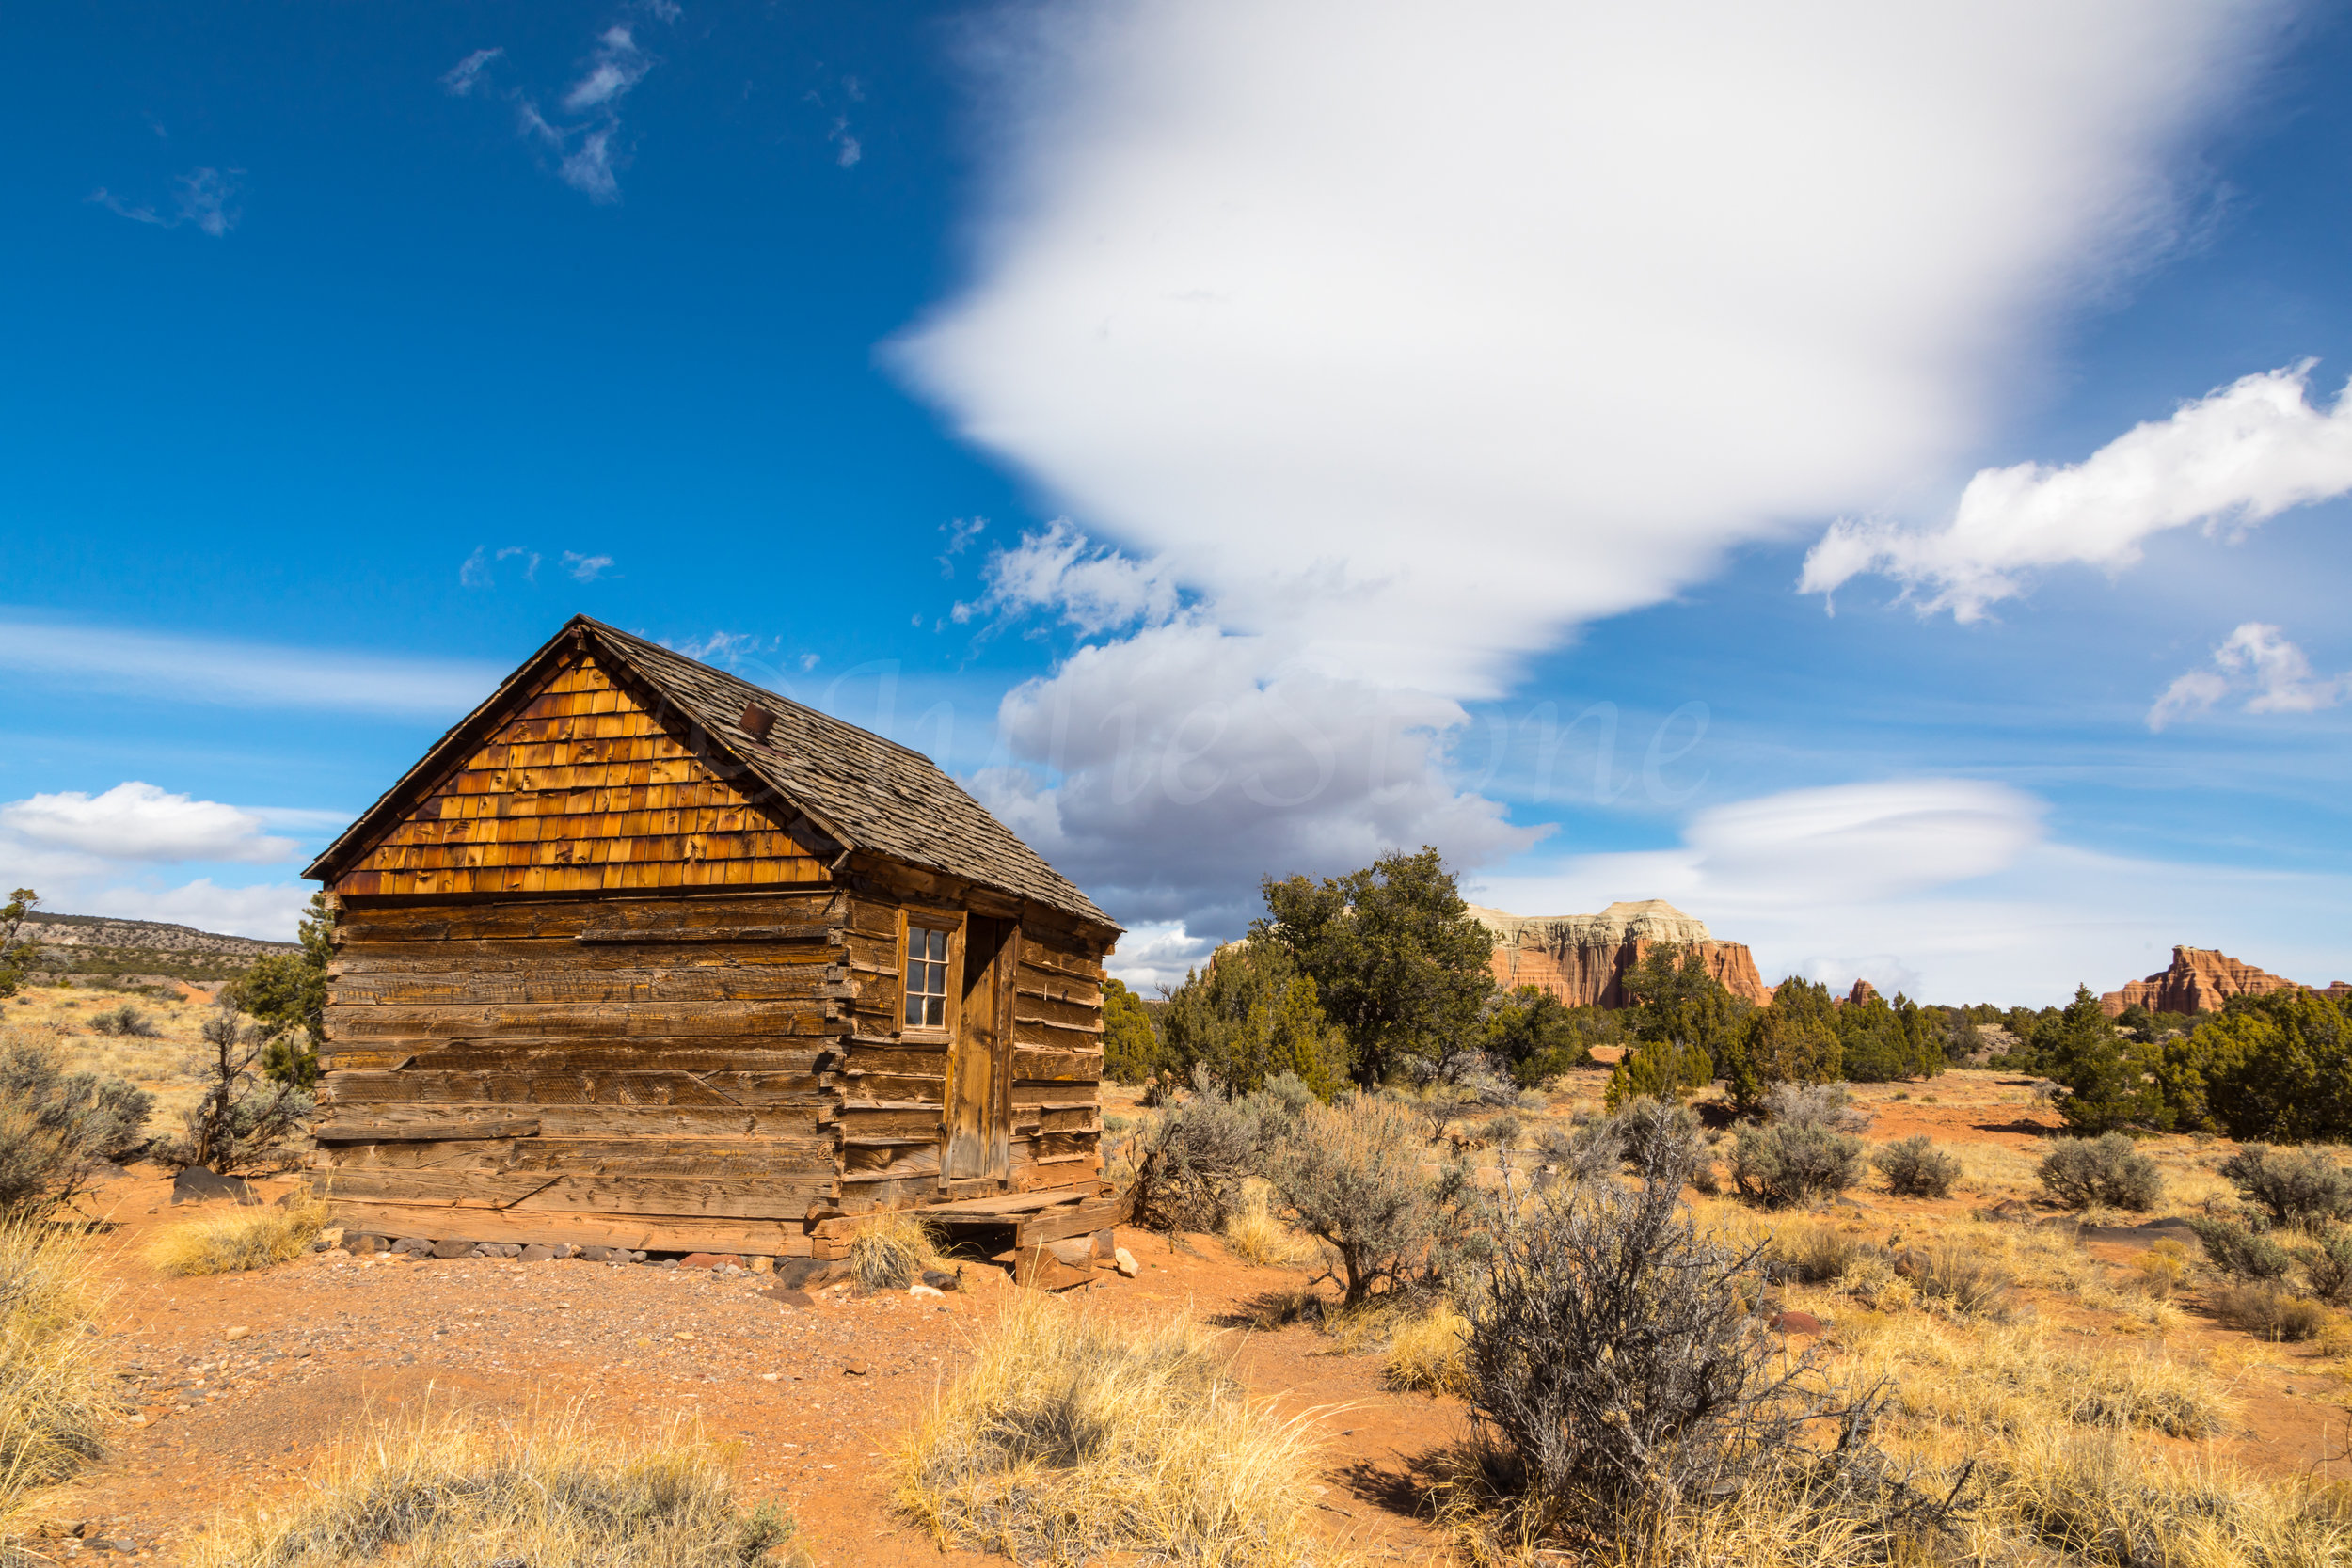 Capitol Reef National Park, Image # 1666